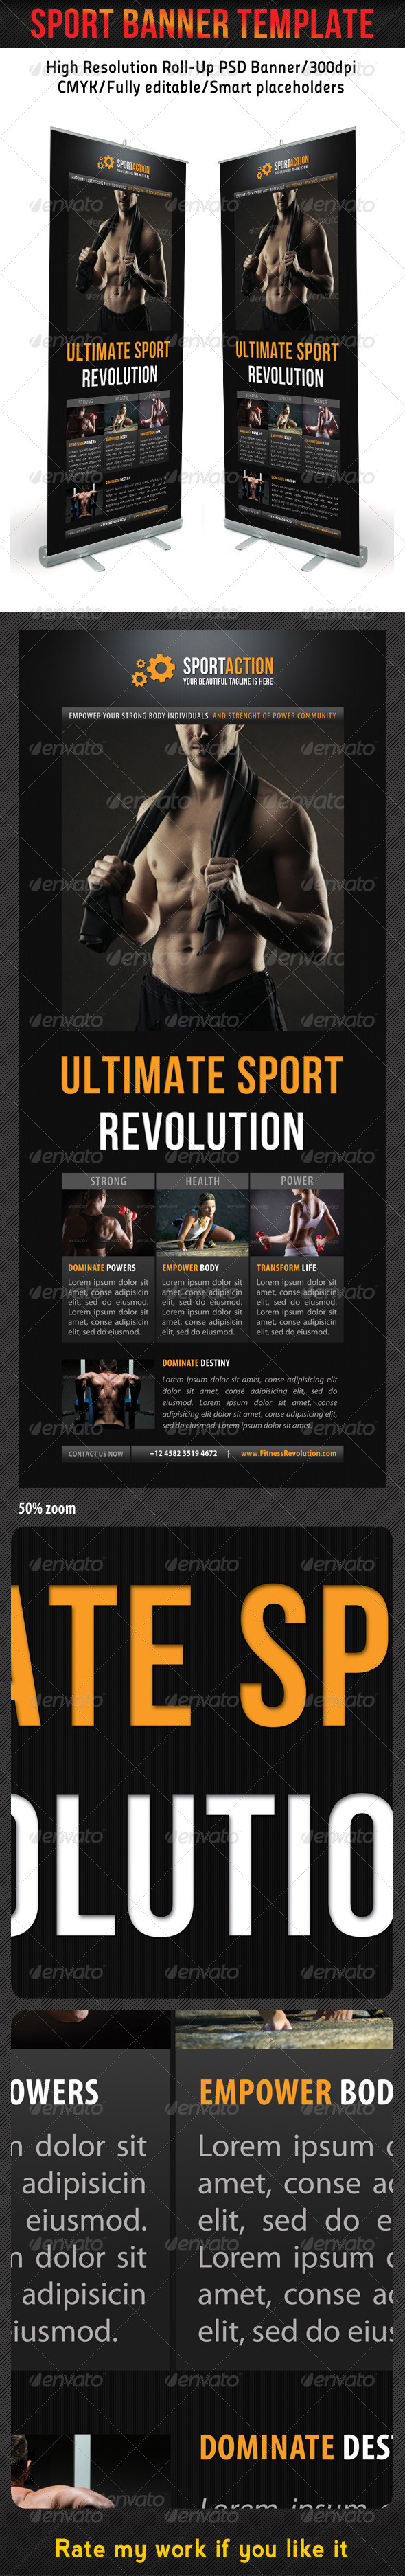 GraphicRiver Sport Banner Template 13 7266035